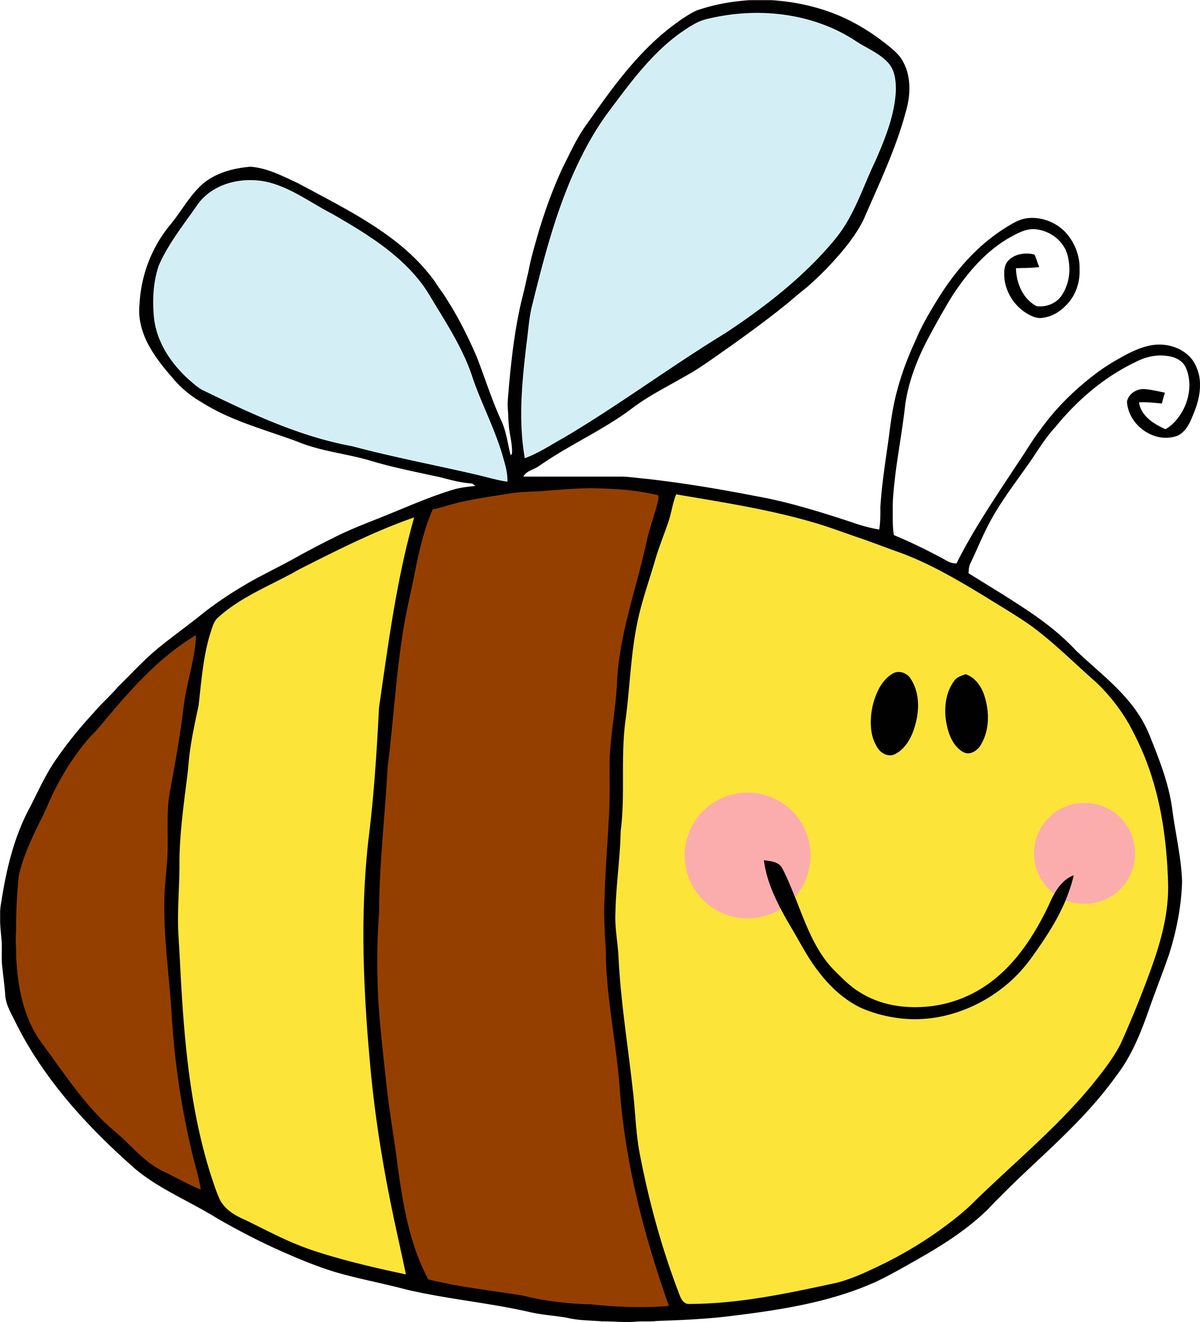 House clipart face.  beekeeping